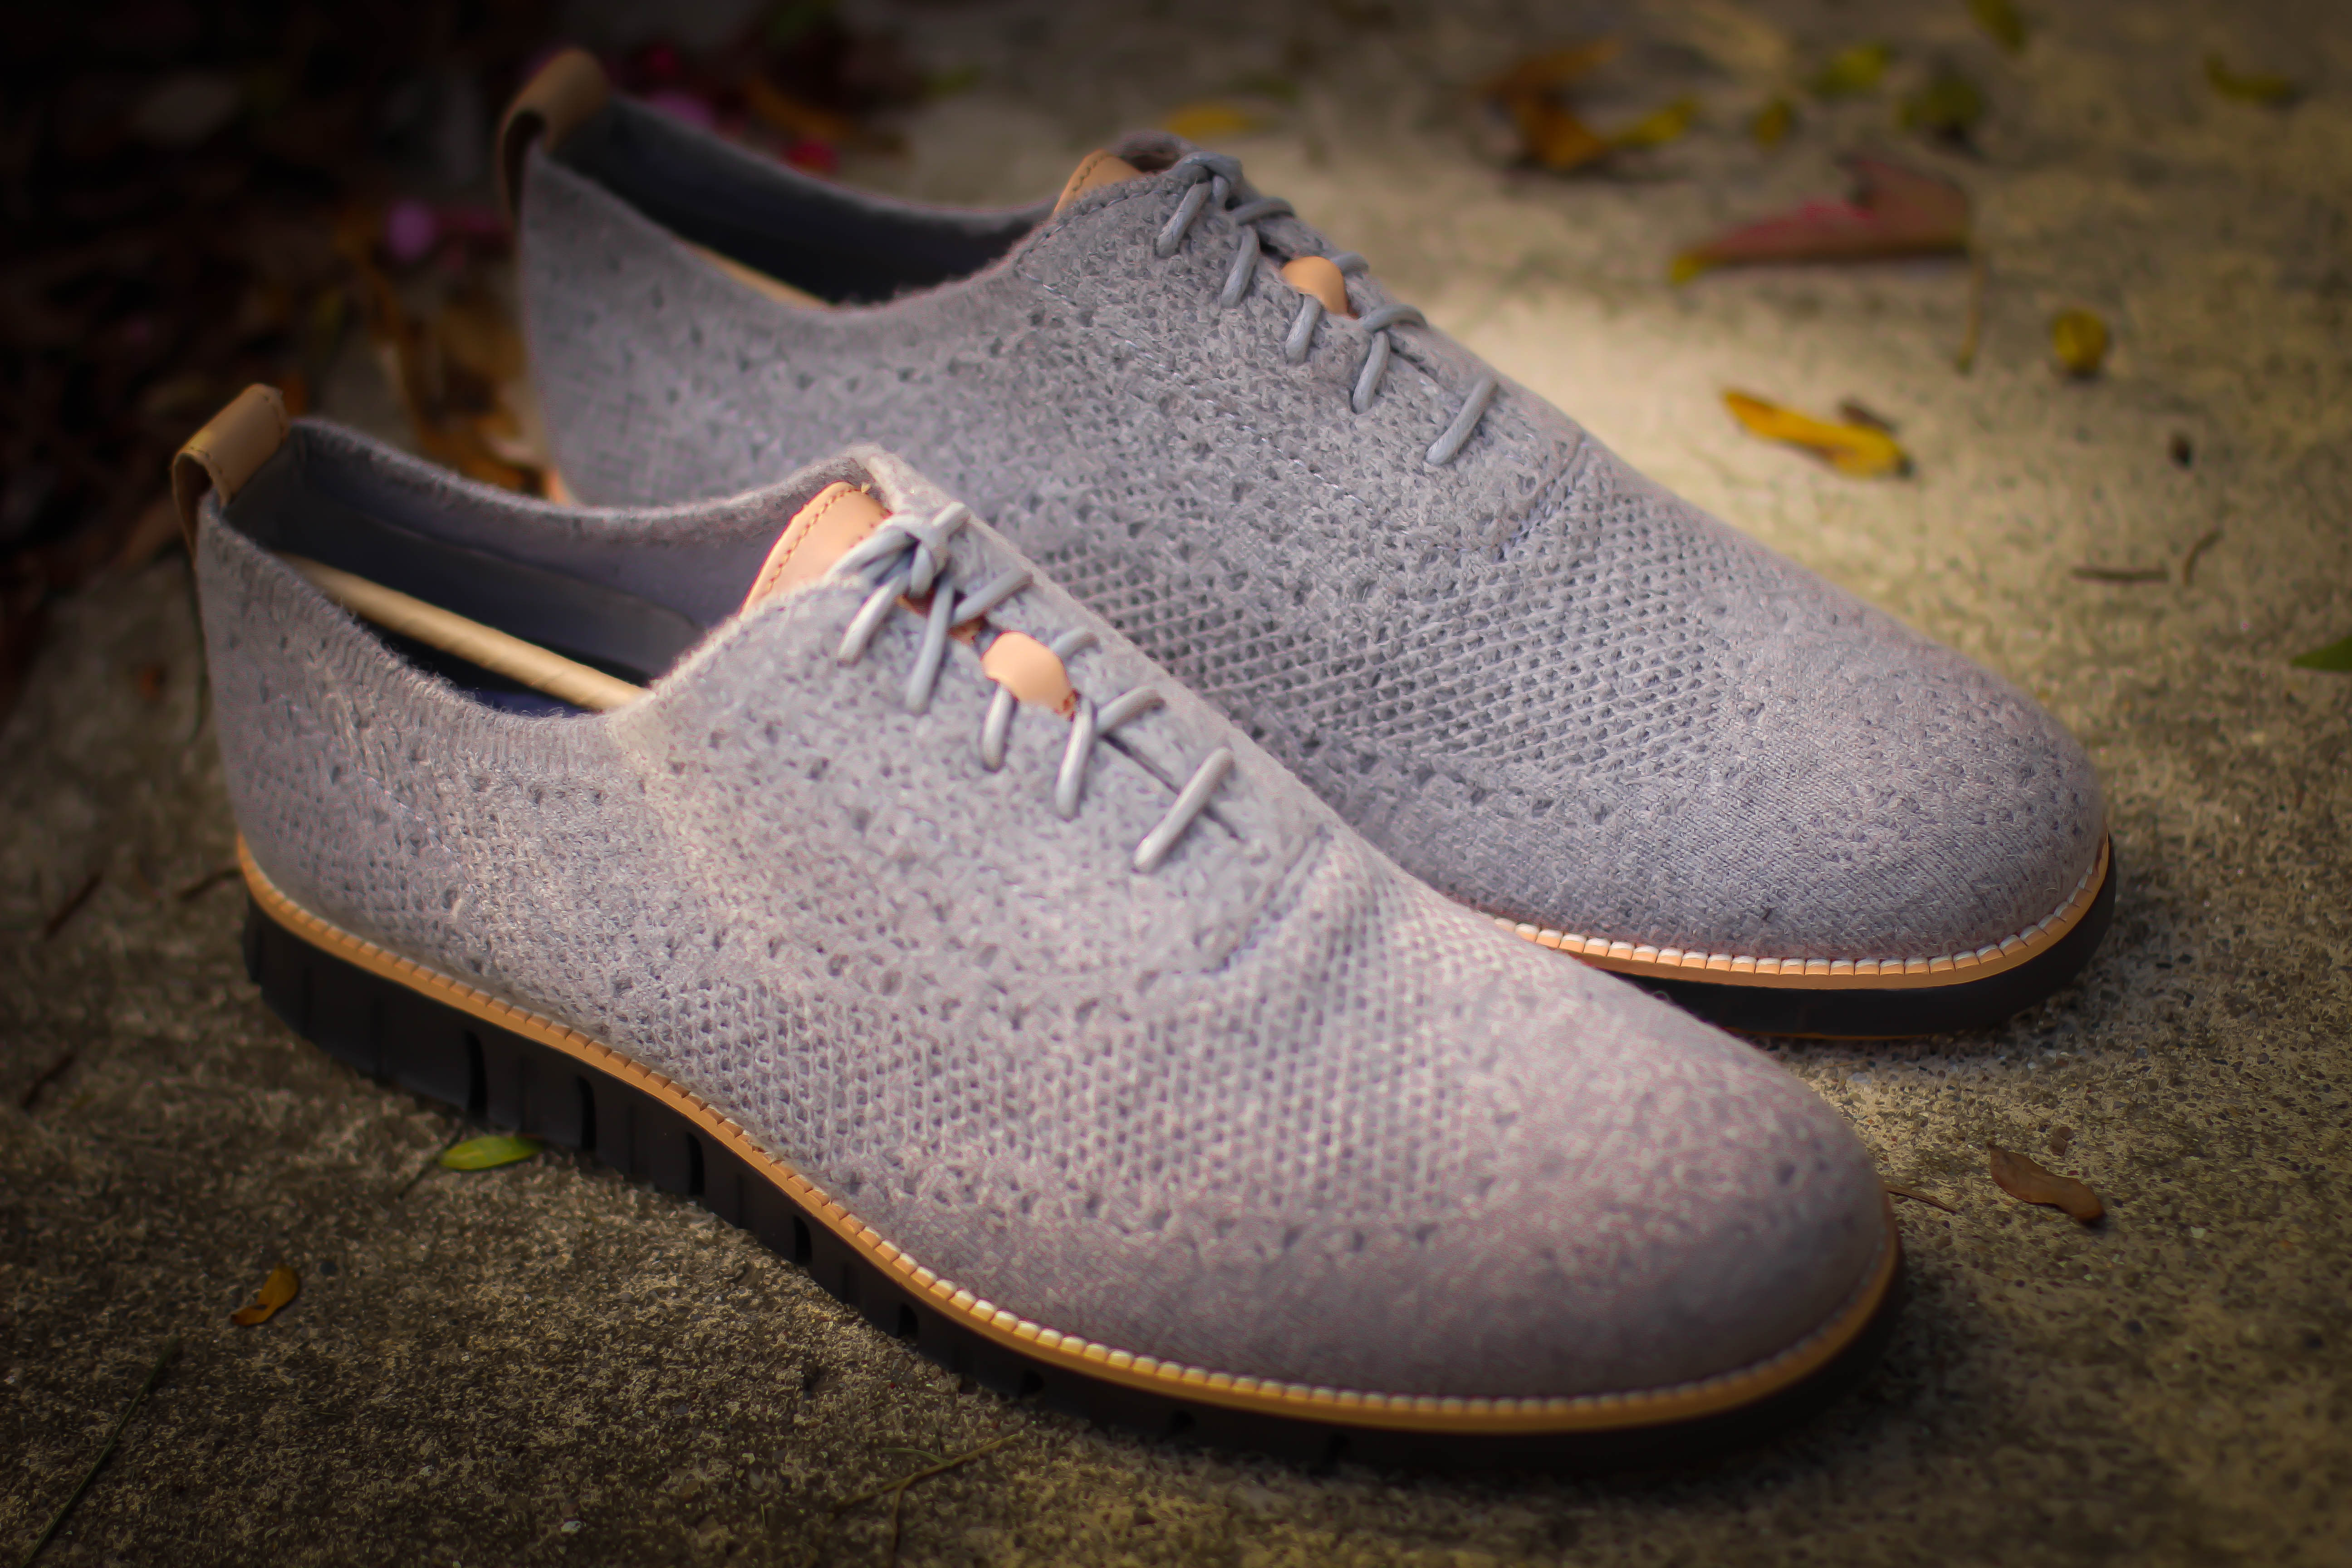 The Cole Haan Stitchlite Oxford and the